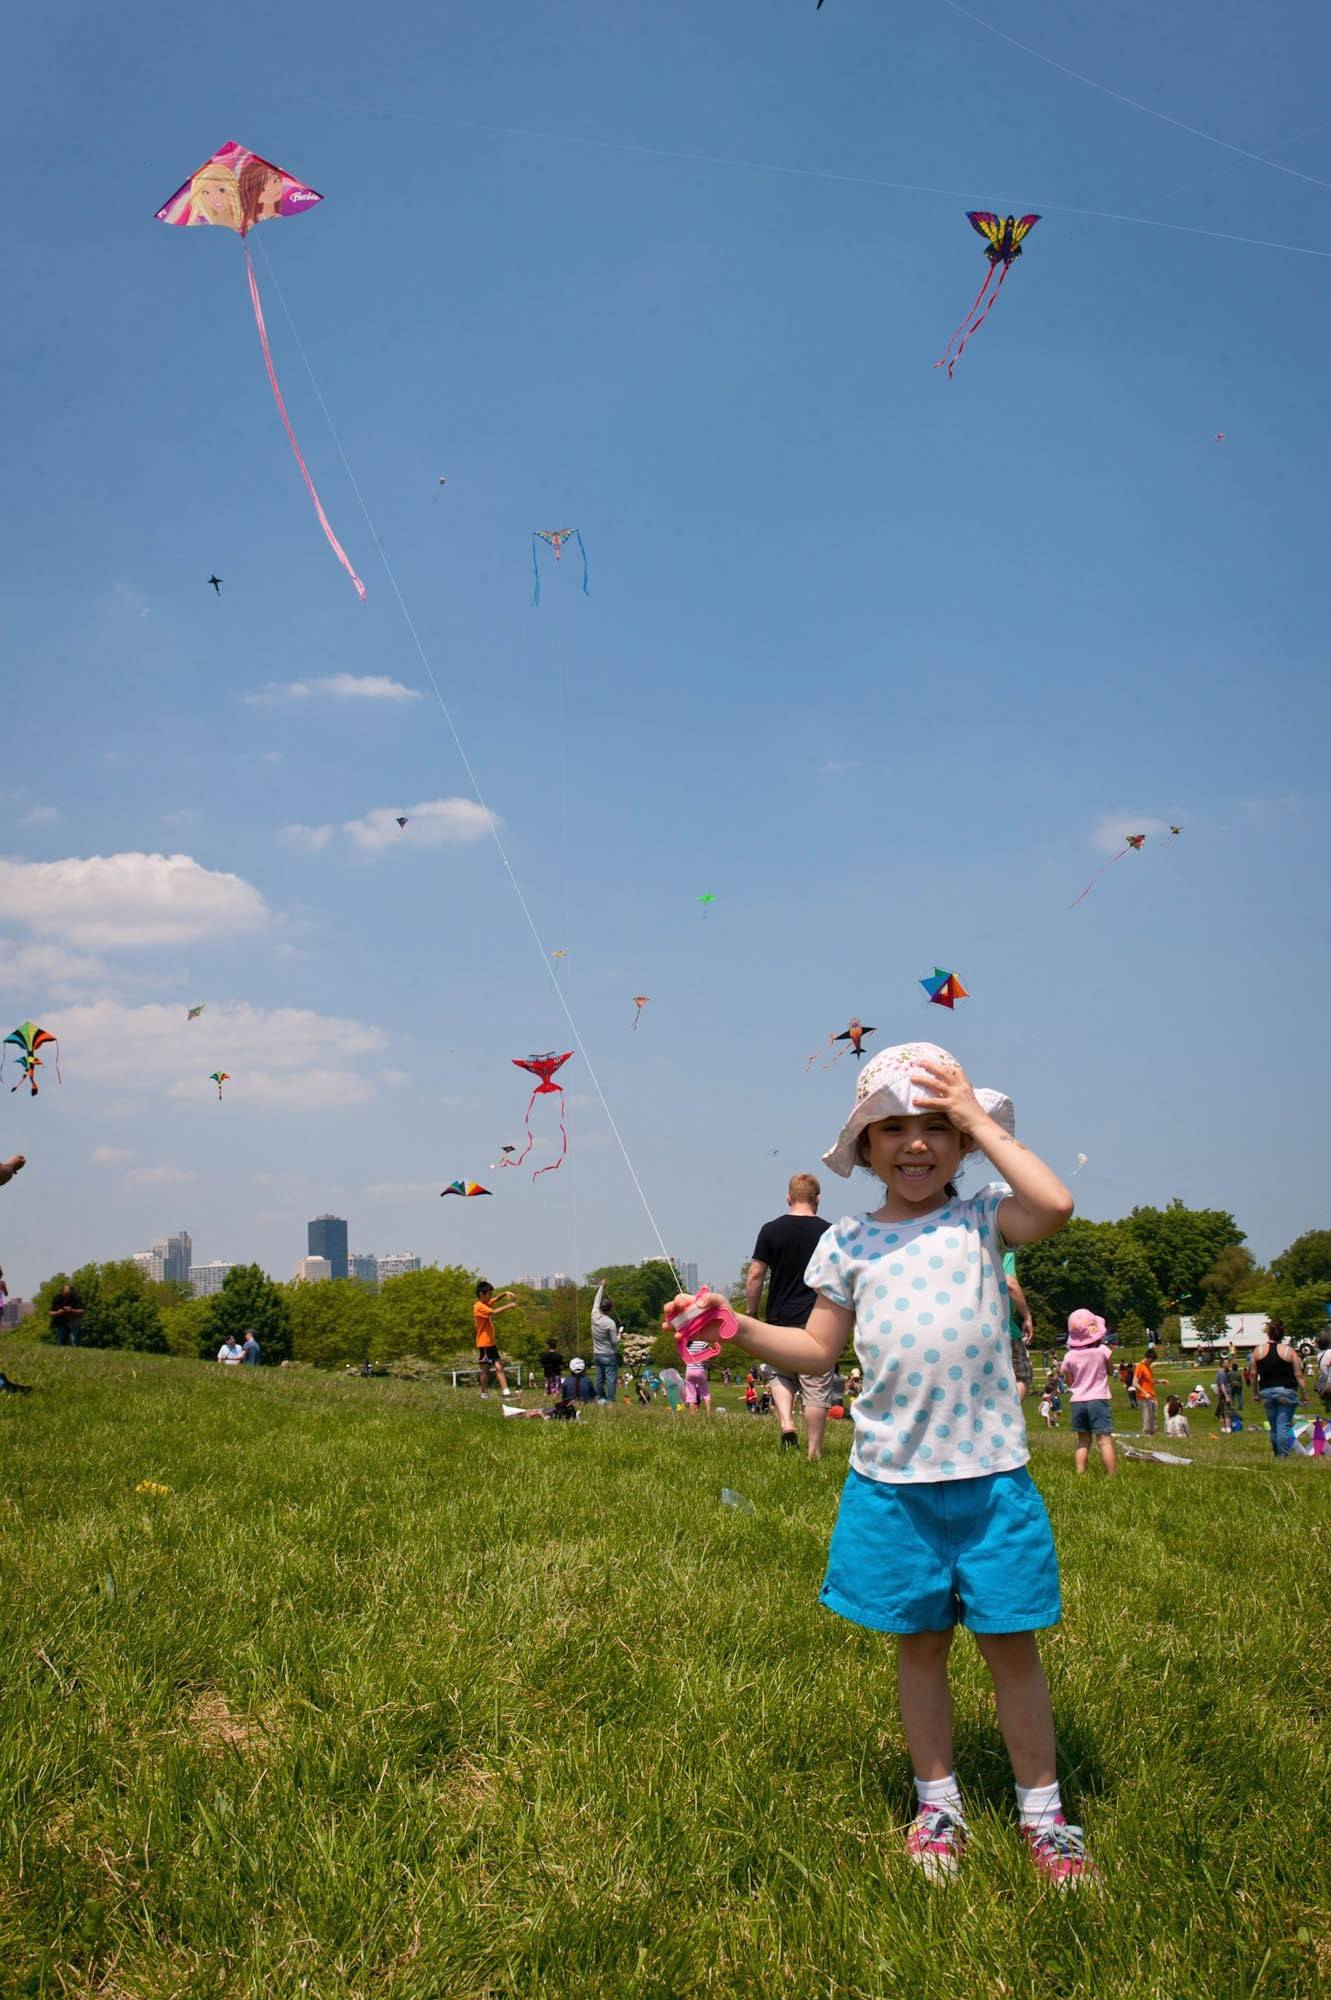 Take the family to the 16th Annual Chicago Kids and Kites Festival at Montrose Harbor May 3.